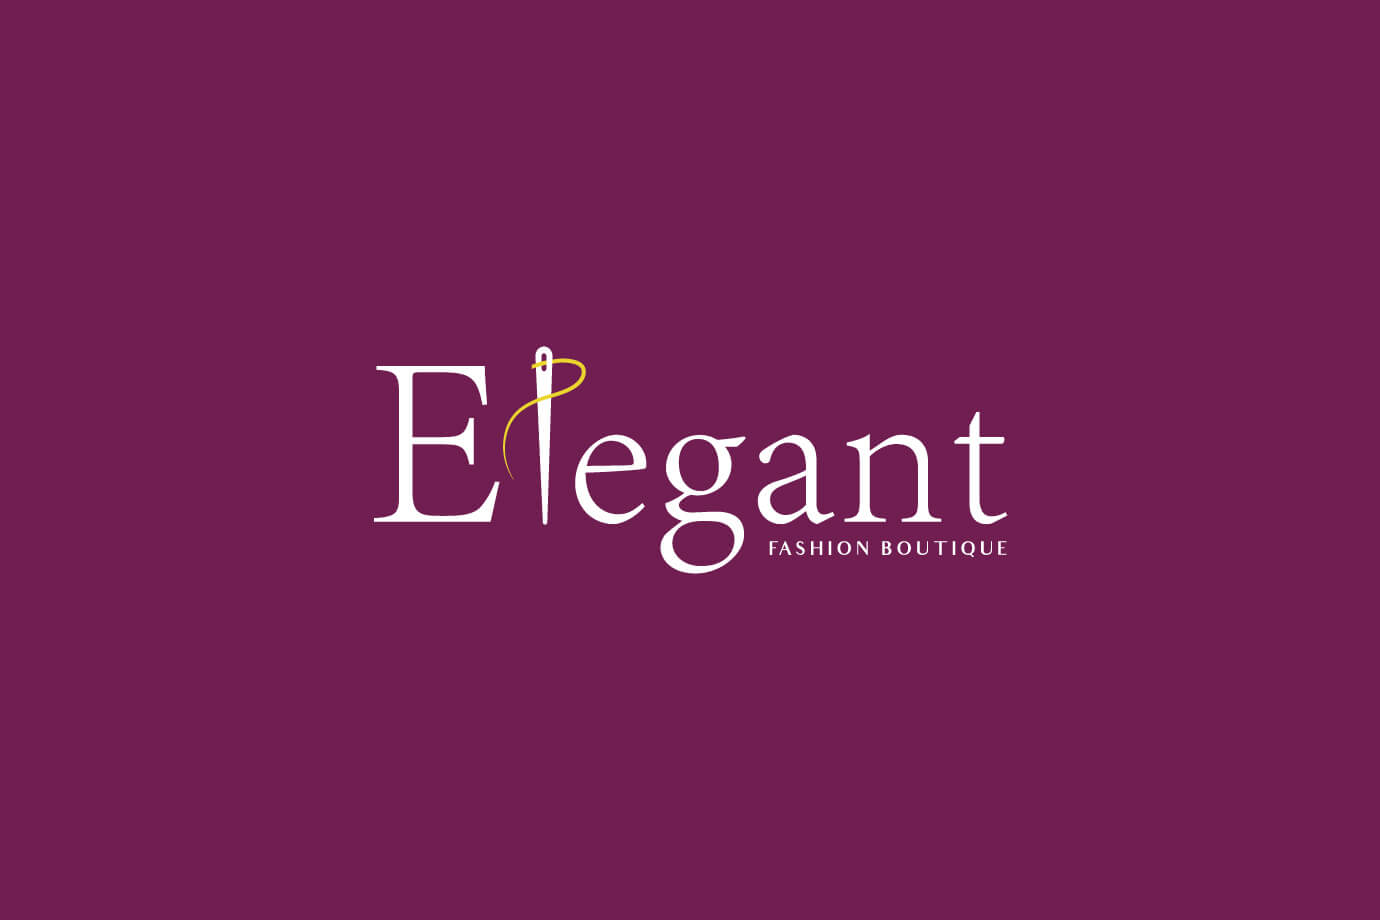 Elegant fashion Logo design By Freelance logo designer Sajid Sulaiman